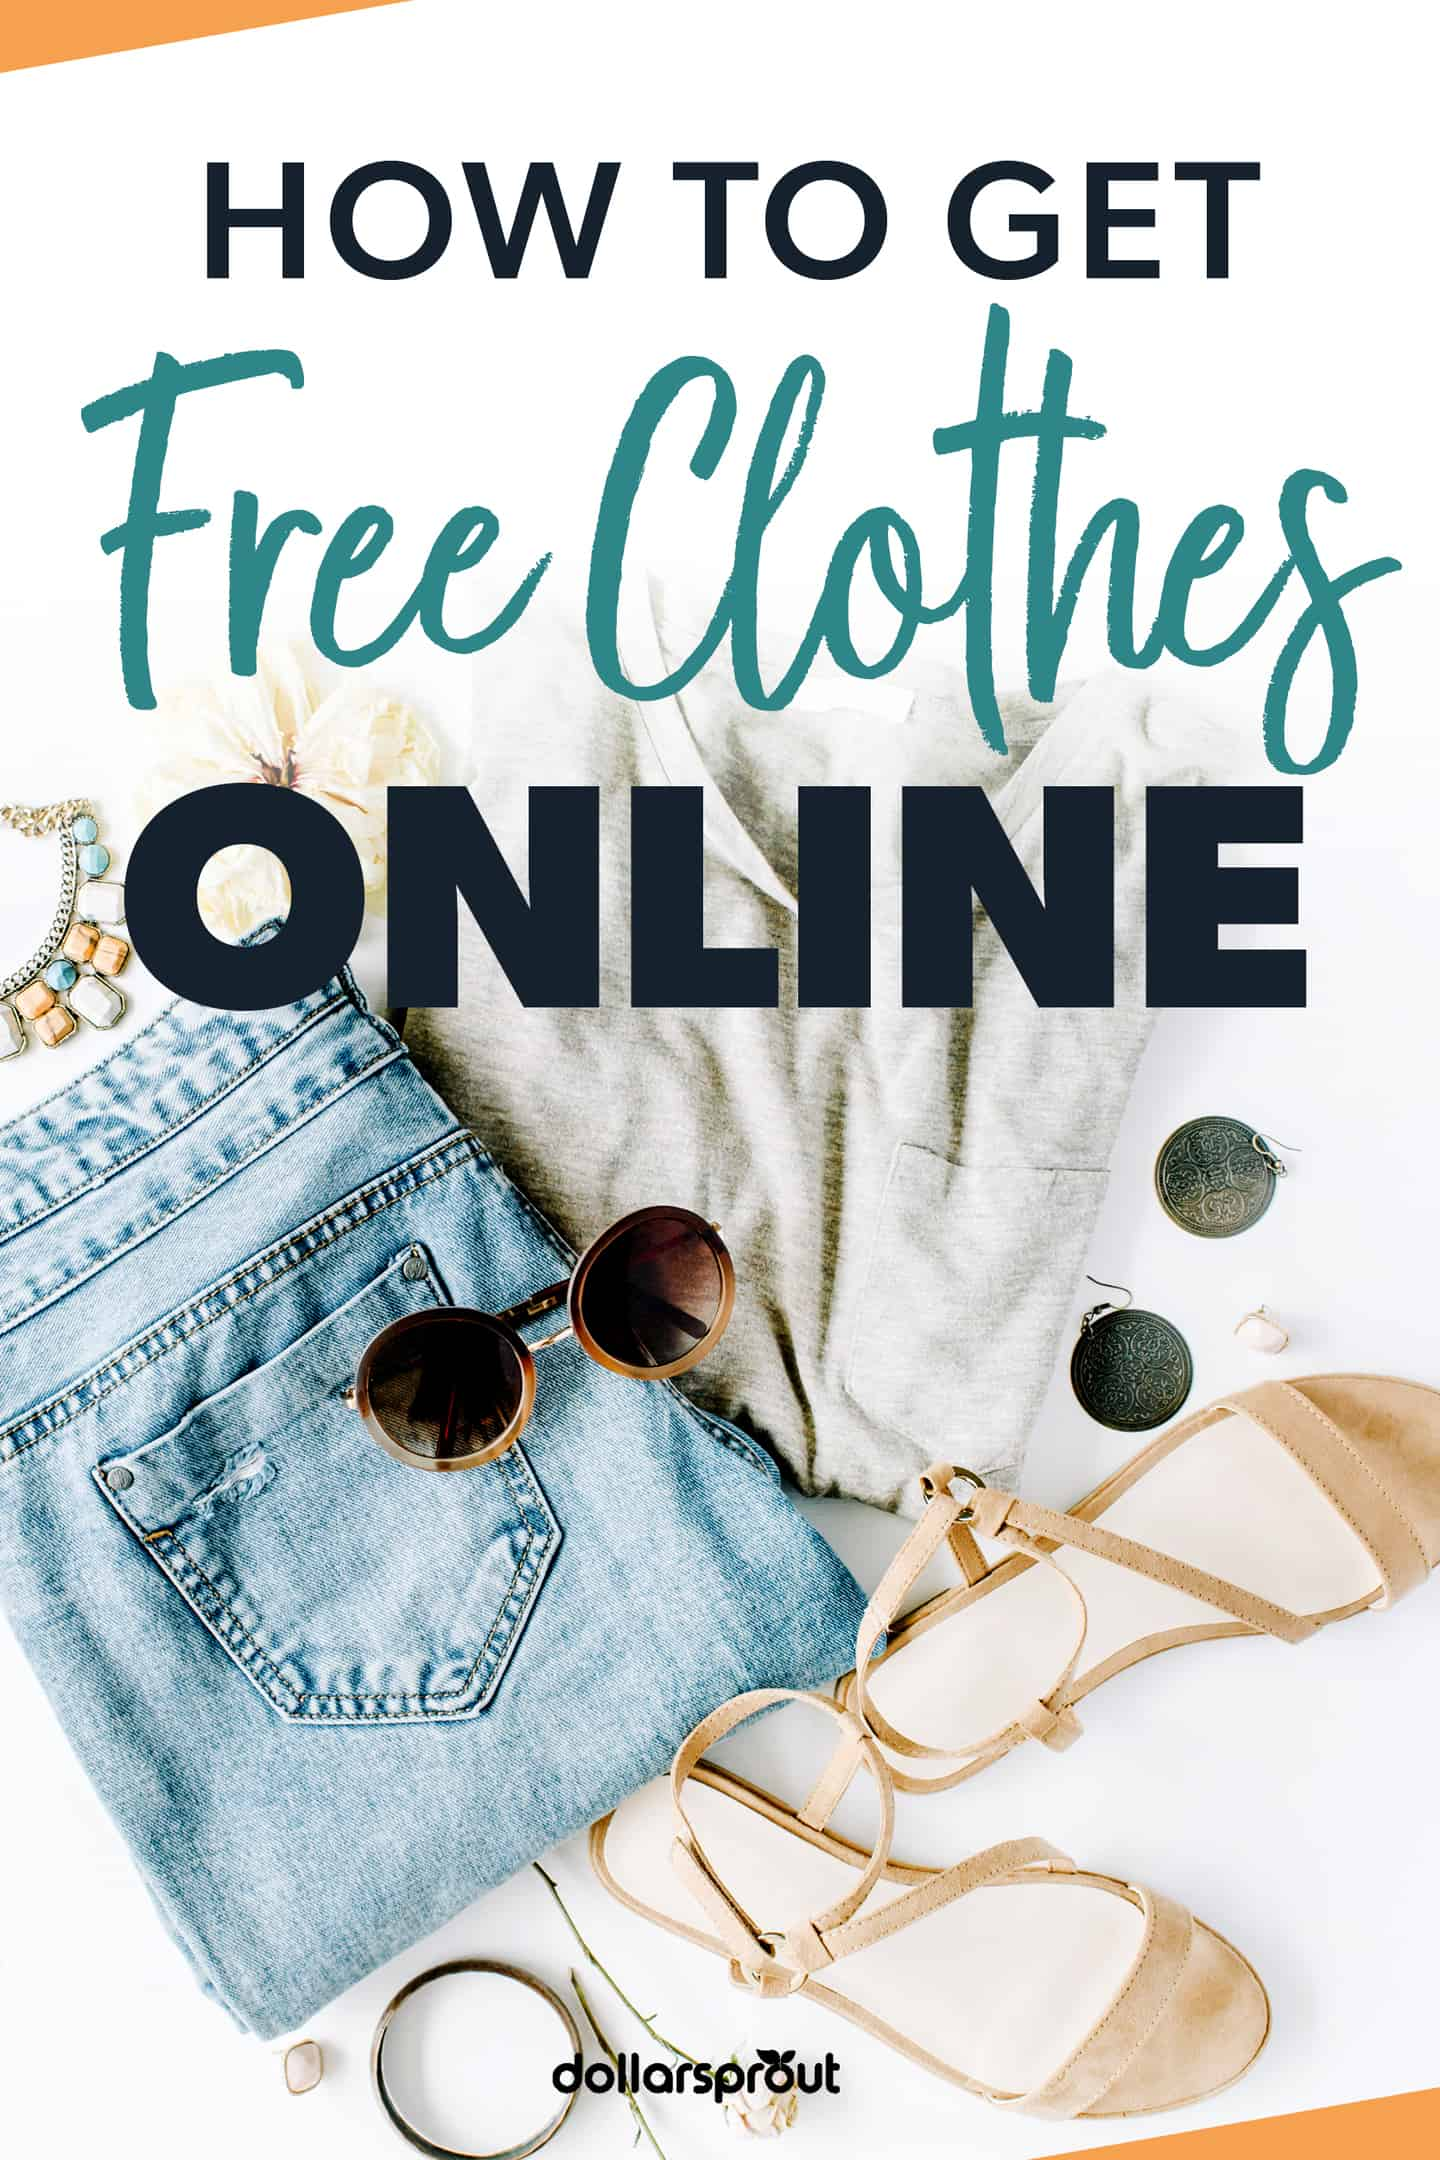 free clothes online